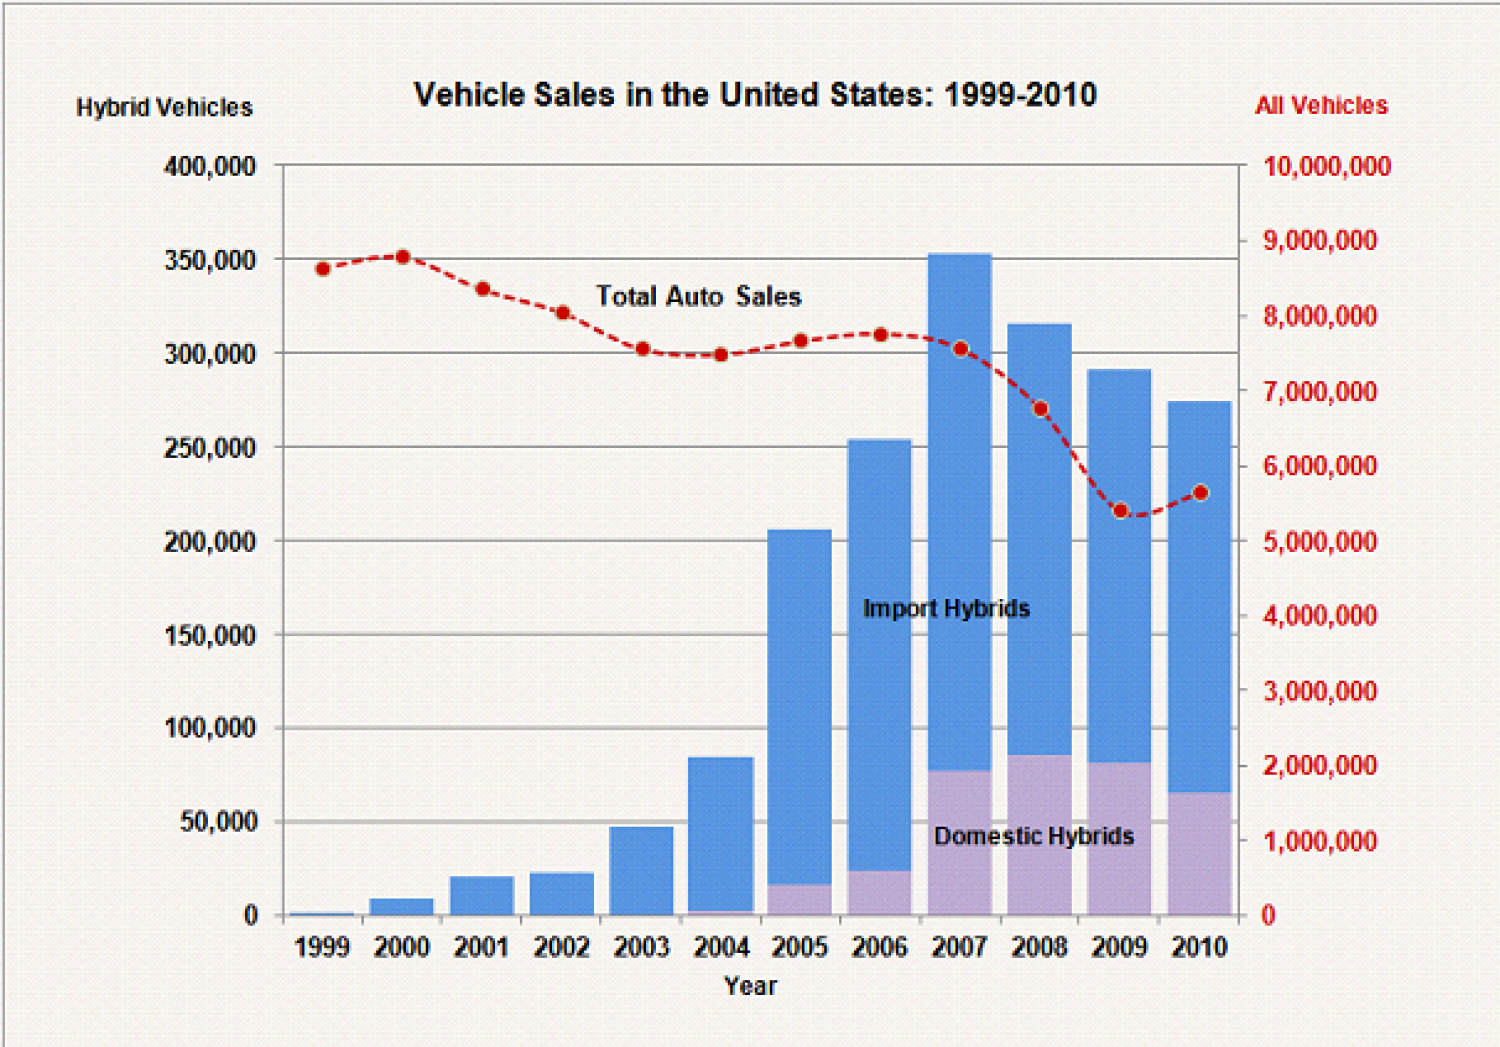 U.S. Vehicle Sales: 1999 - 2010 Infographic